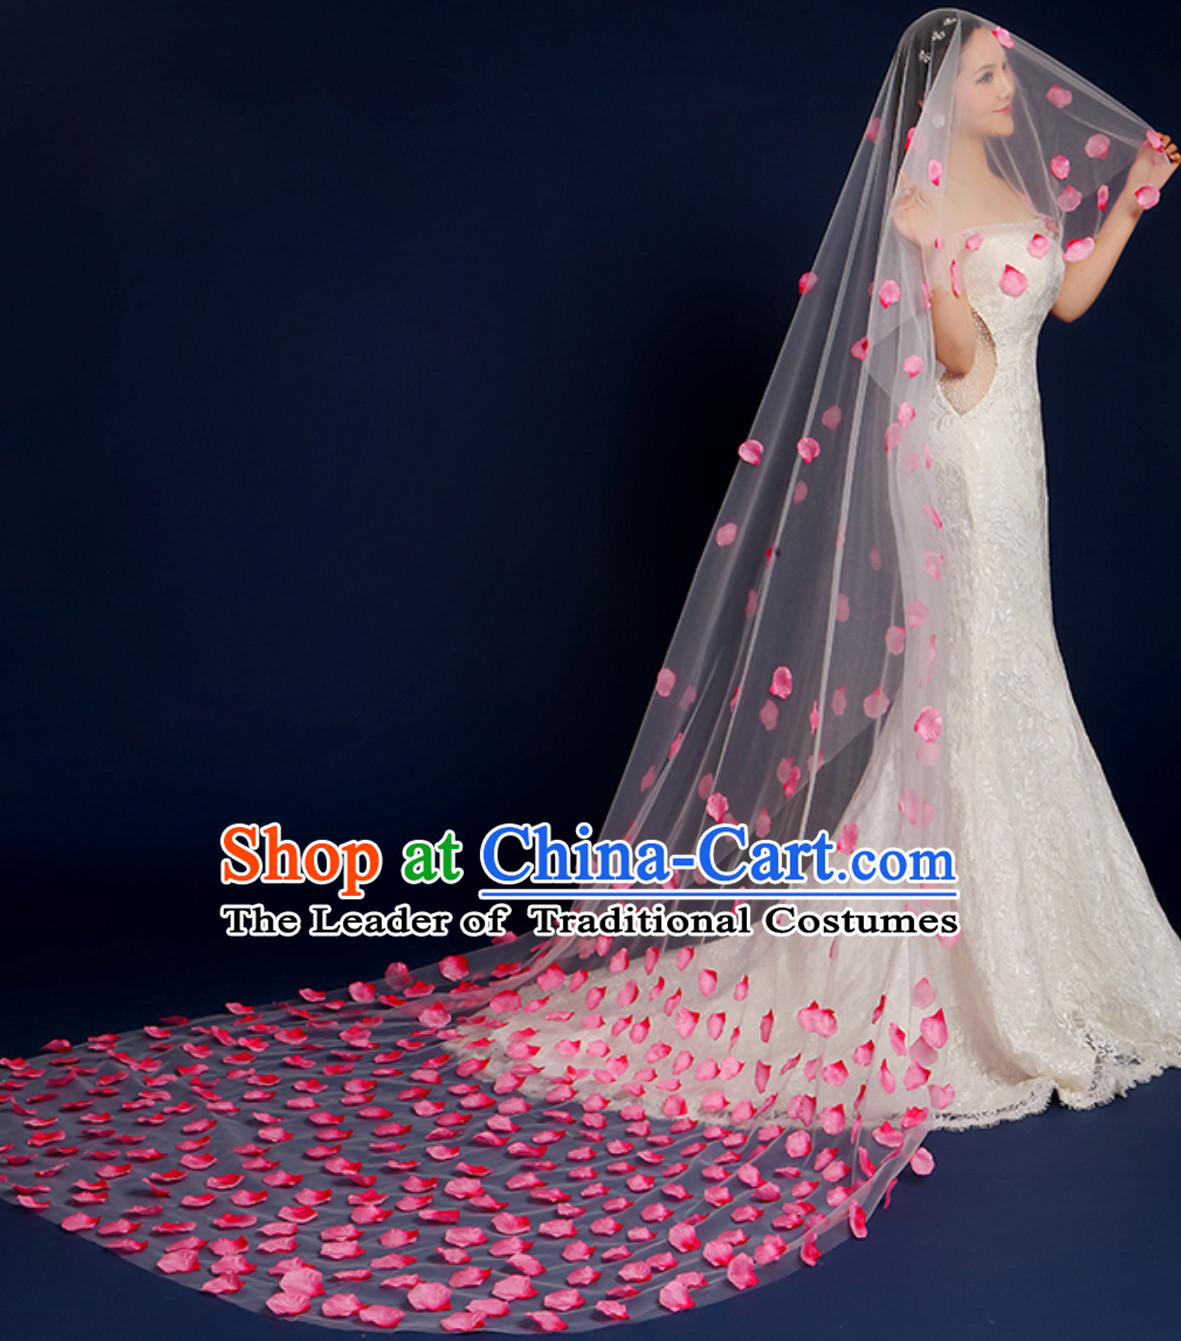 1.75 Meters Long Handmade Romantic Flower Petal Wedding Veil